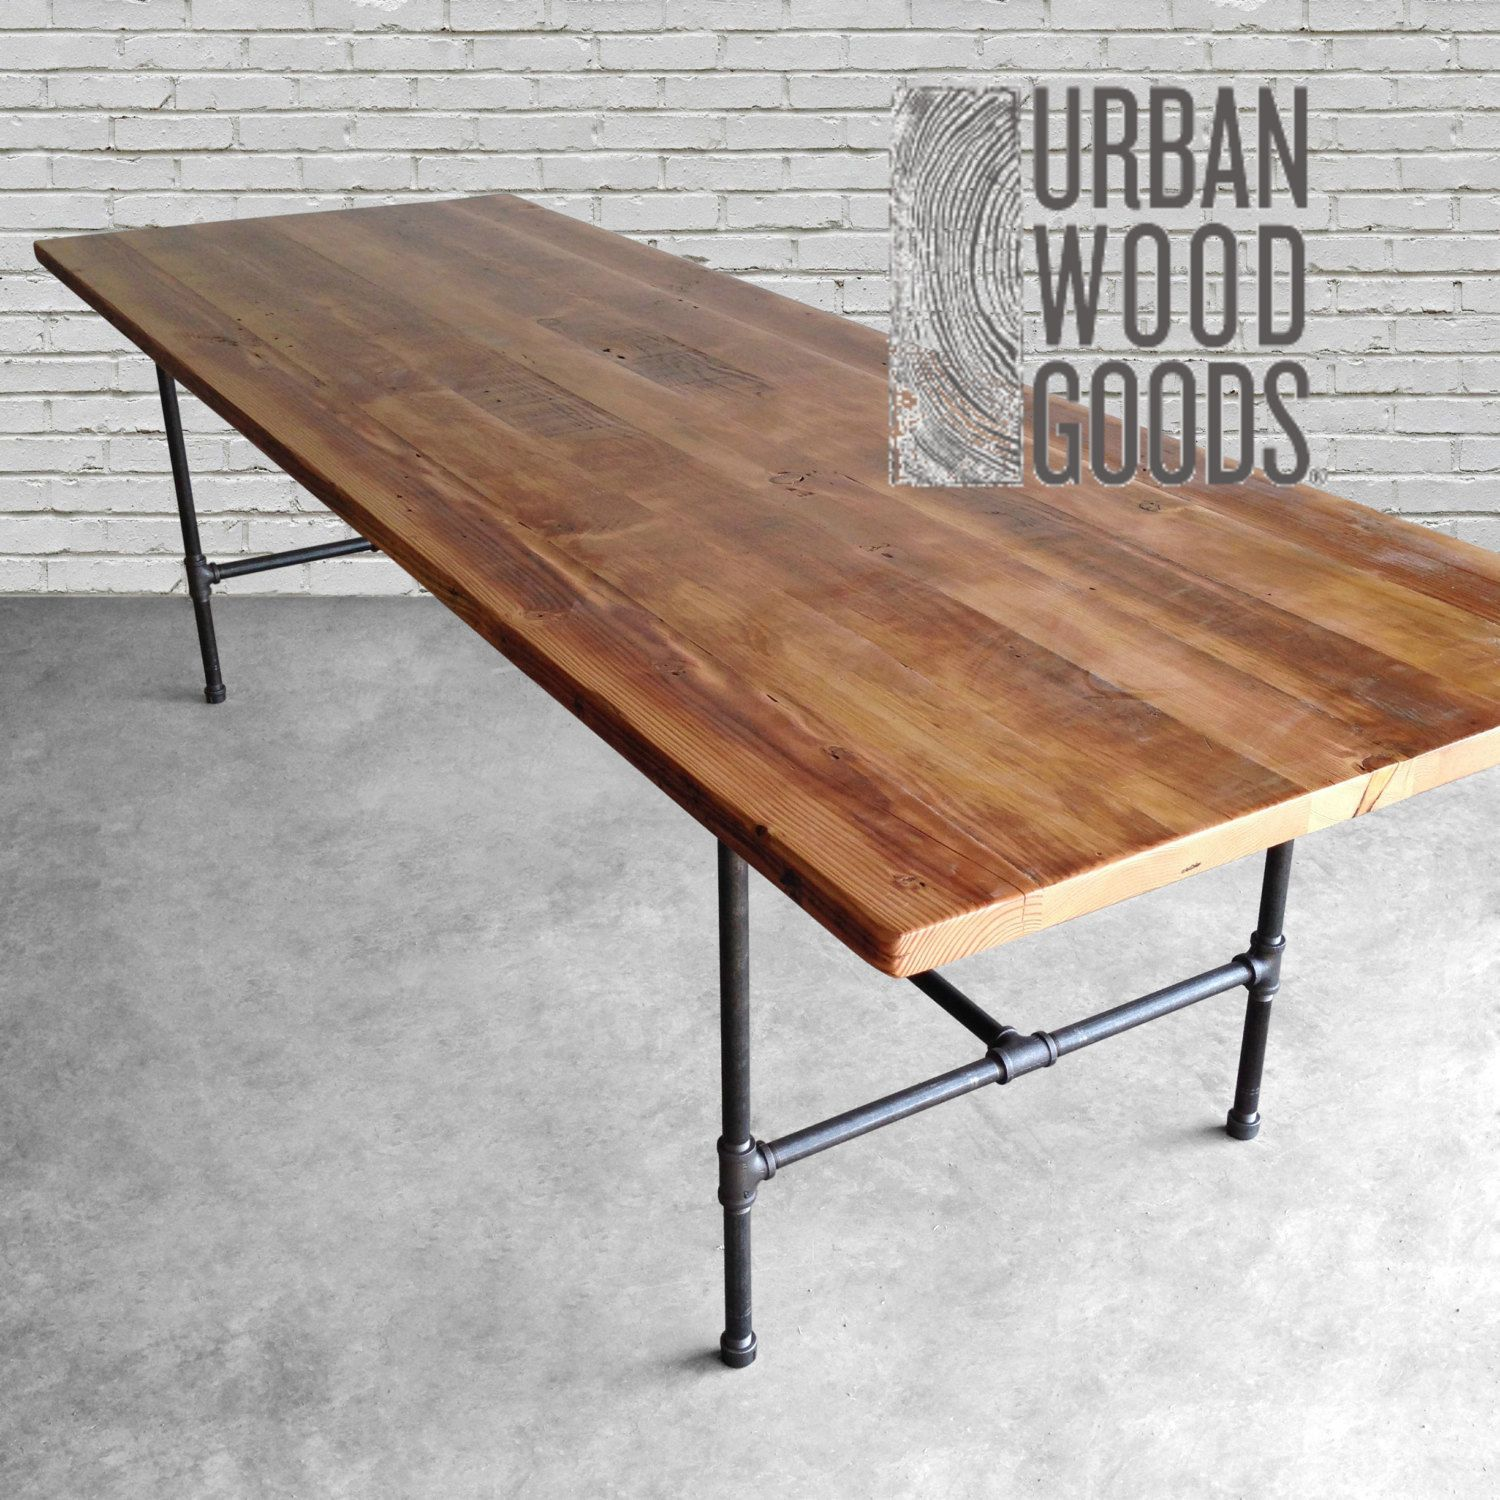 Solid Wood Dining Table With Reclaimed Wood Top And Iron Pipe Legs - Reclaimed wood dining table